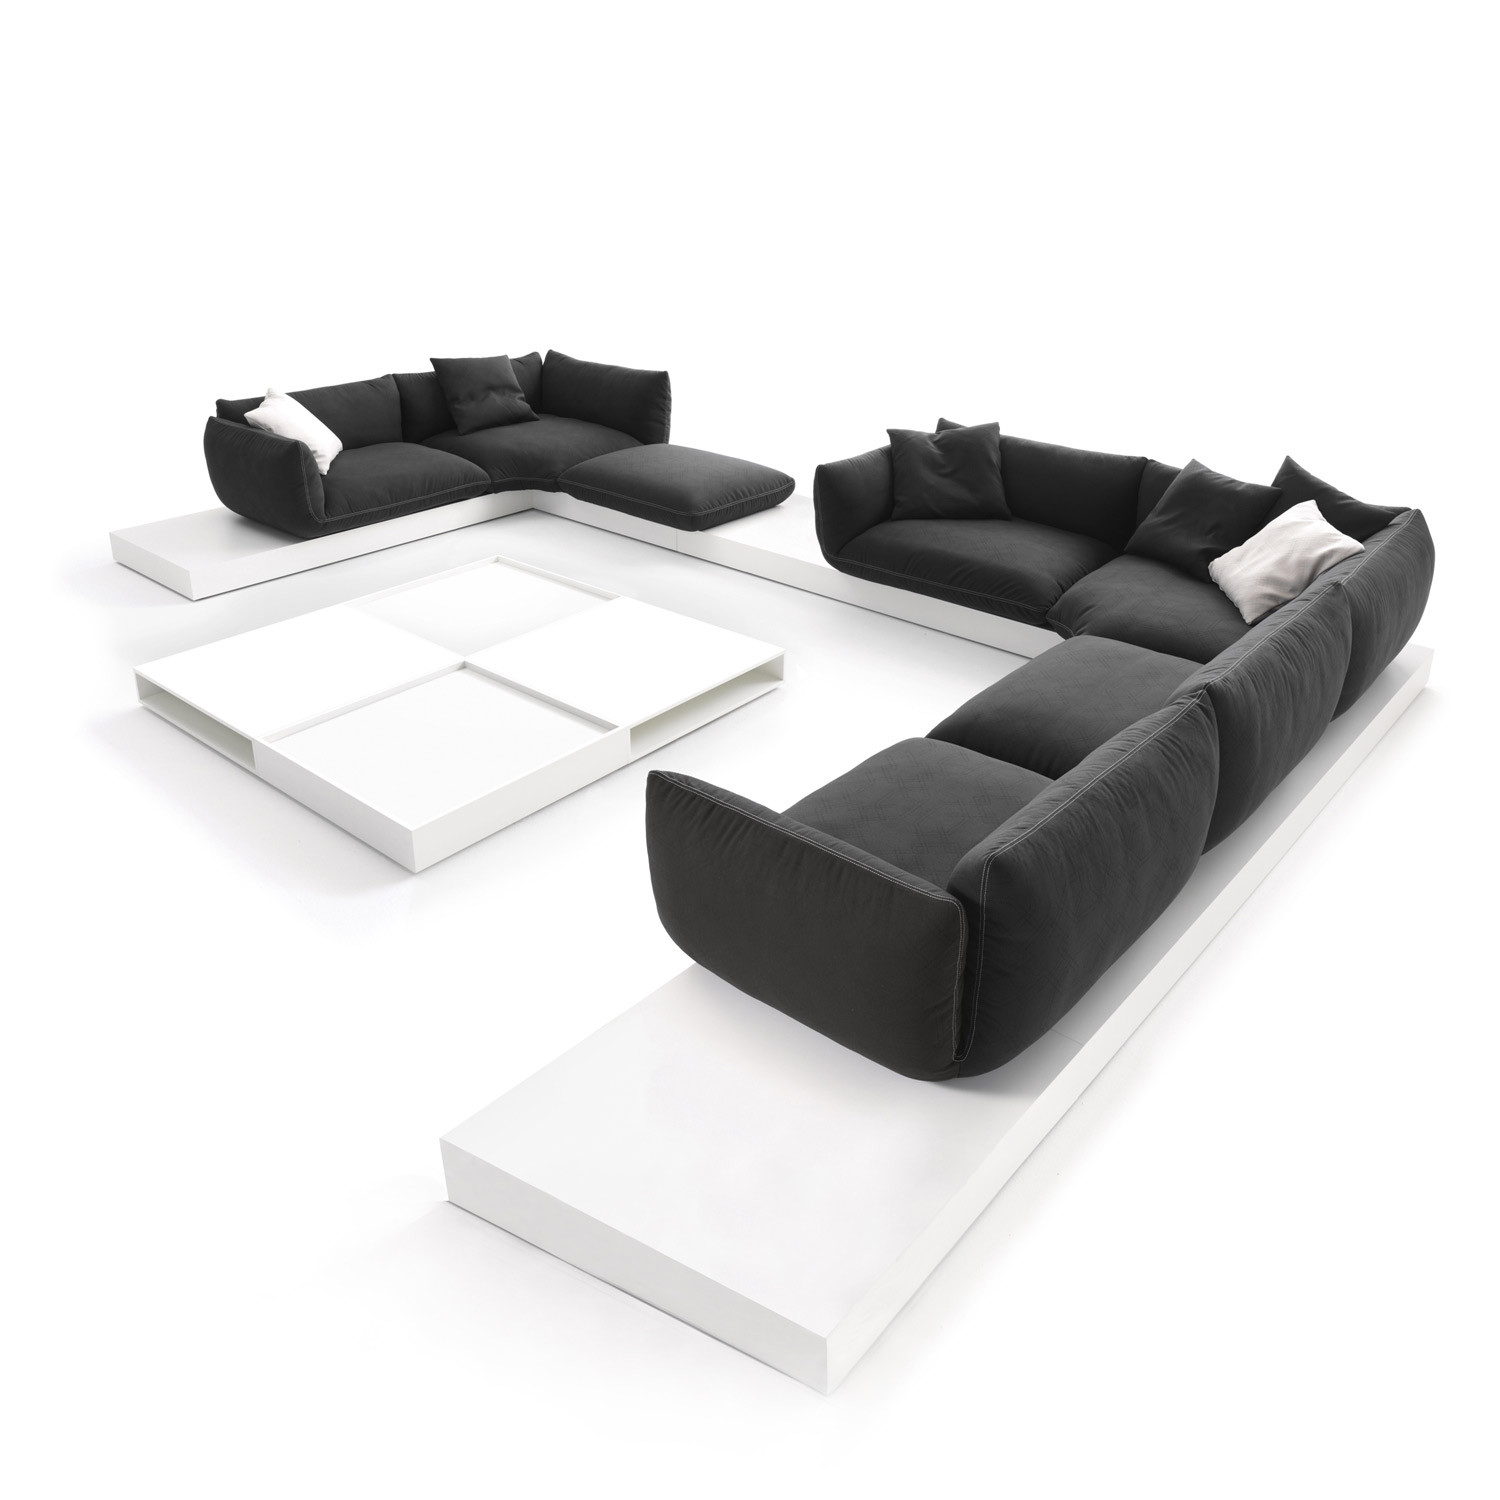 Jalis Modular Floating Sofa